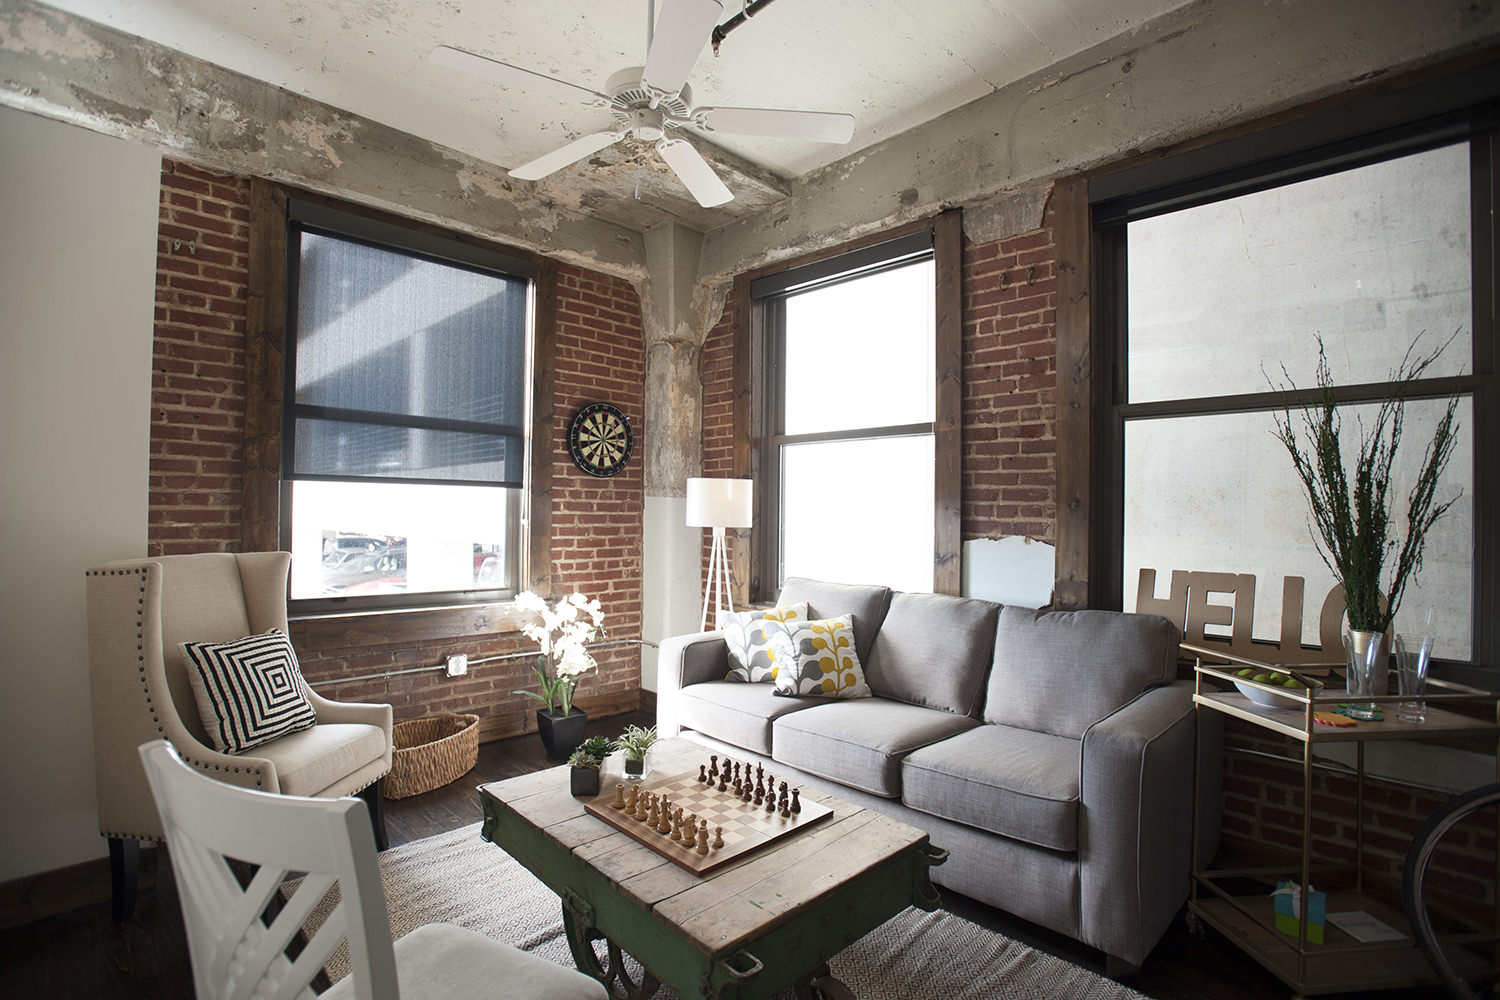 Pressbox Lofts Downtown Memphis, Tennessee - Historic Redevelopment Renovation - 6.jpg